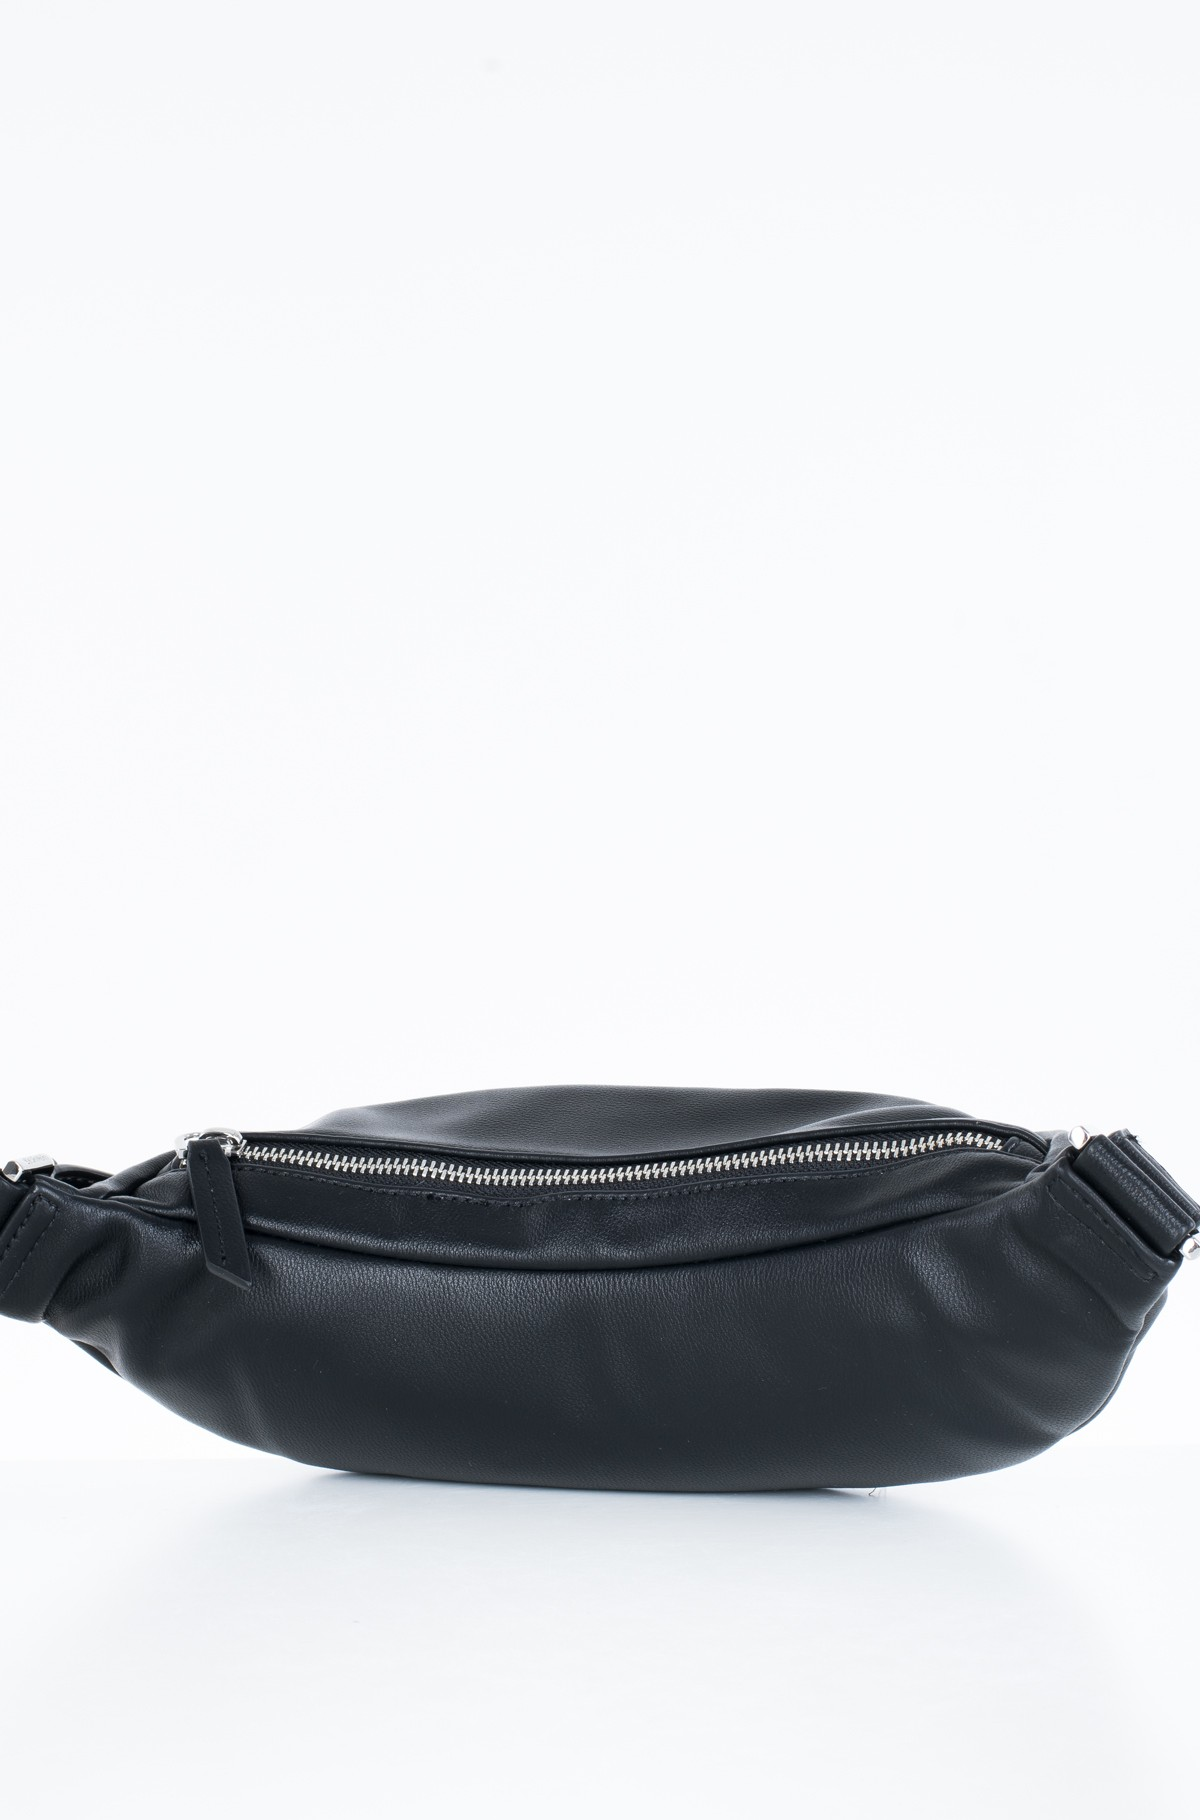 Vöökott NY SHAPED WAISTBAG MD-full-2